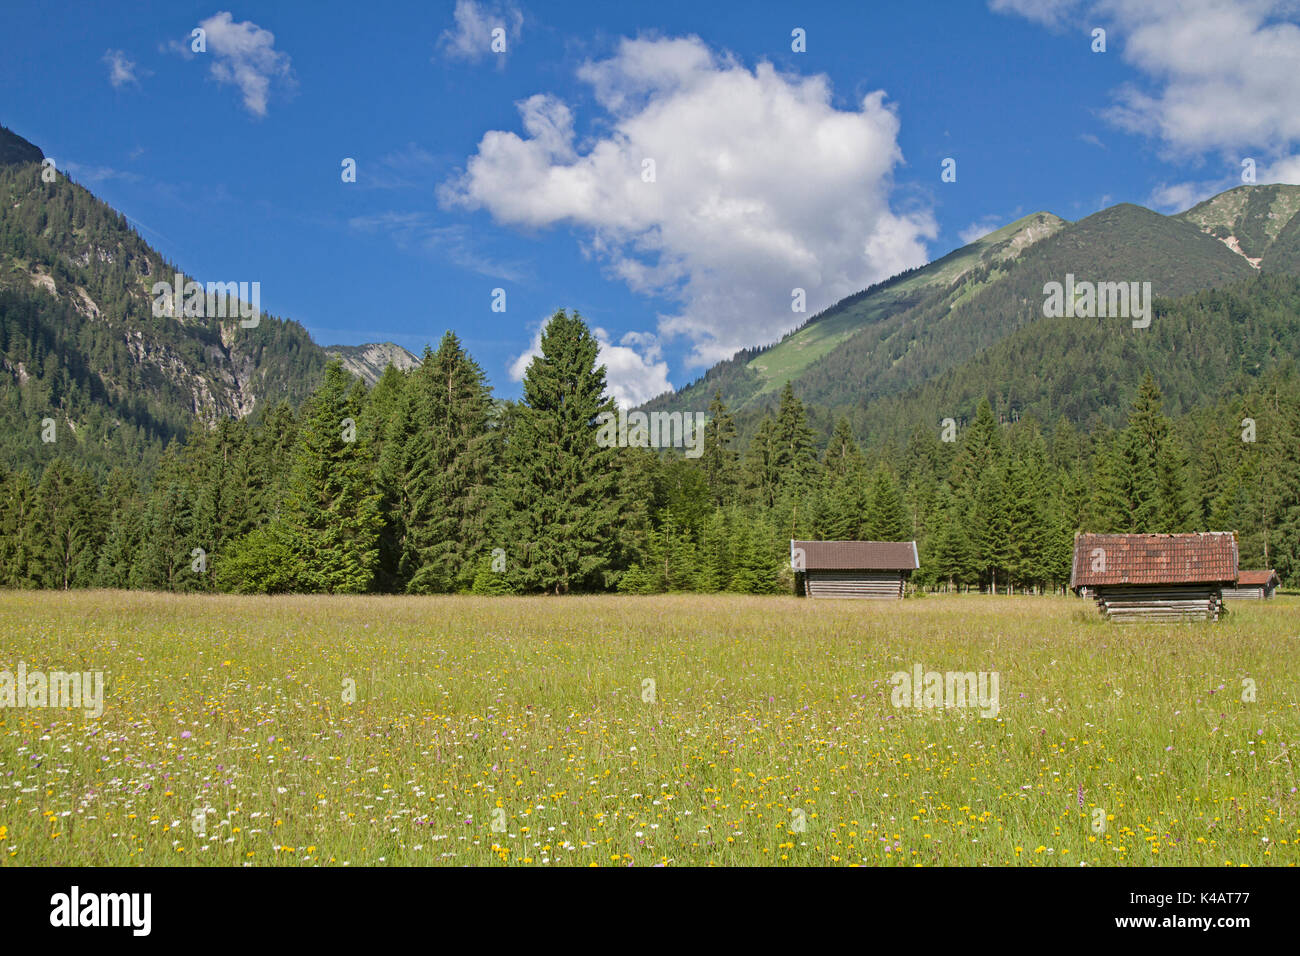 During The Ascent To Enningalm In The Ammergau Alps The Walkers Will Pass At This Wonderful Pastureland - Stock Image